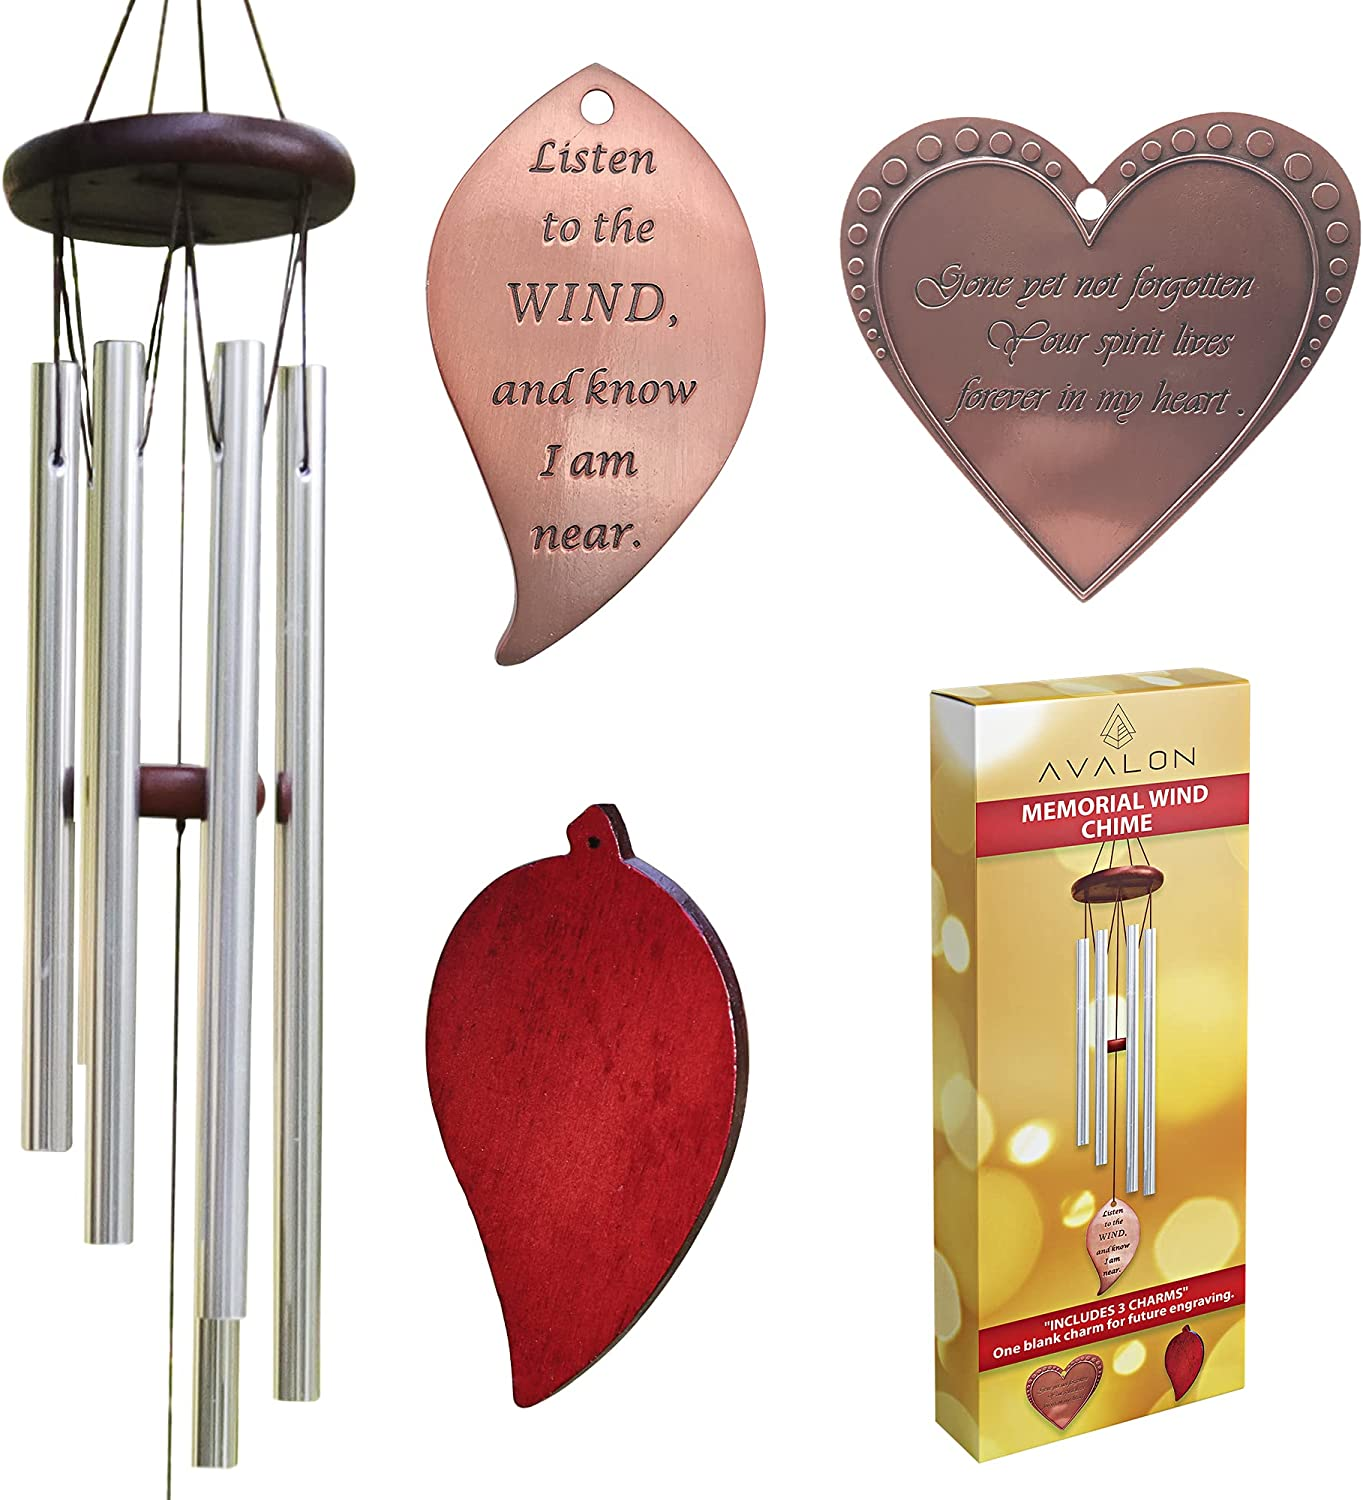 Free shipping Avalon 25 Inch 2021 autumn and winter new Memorial Wind Sympathy Bereavemen Chimes Gifts